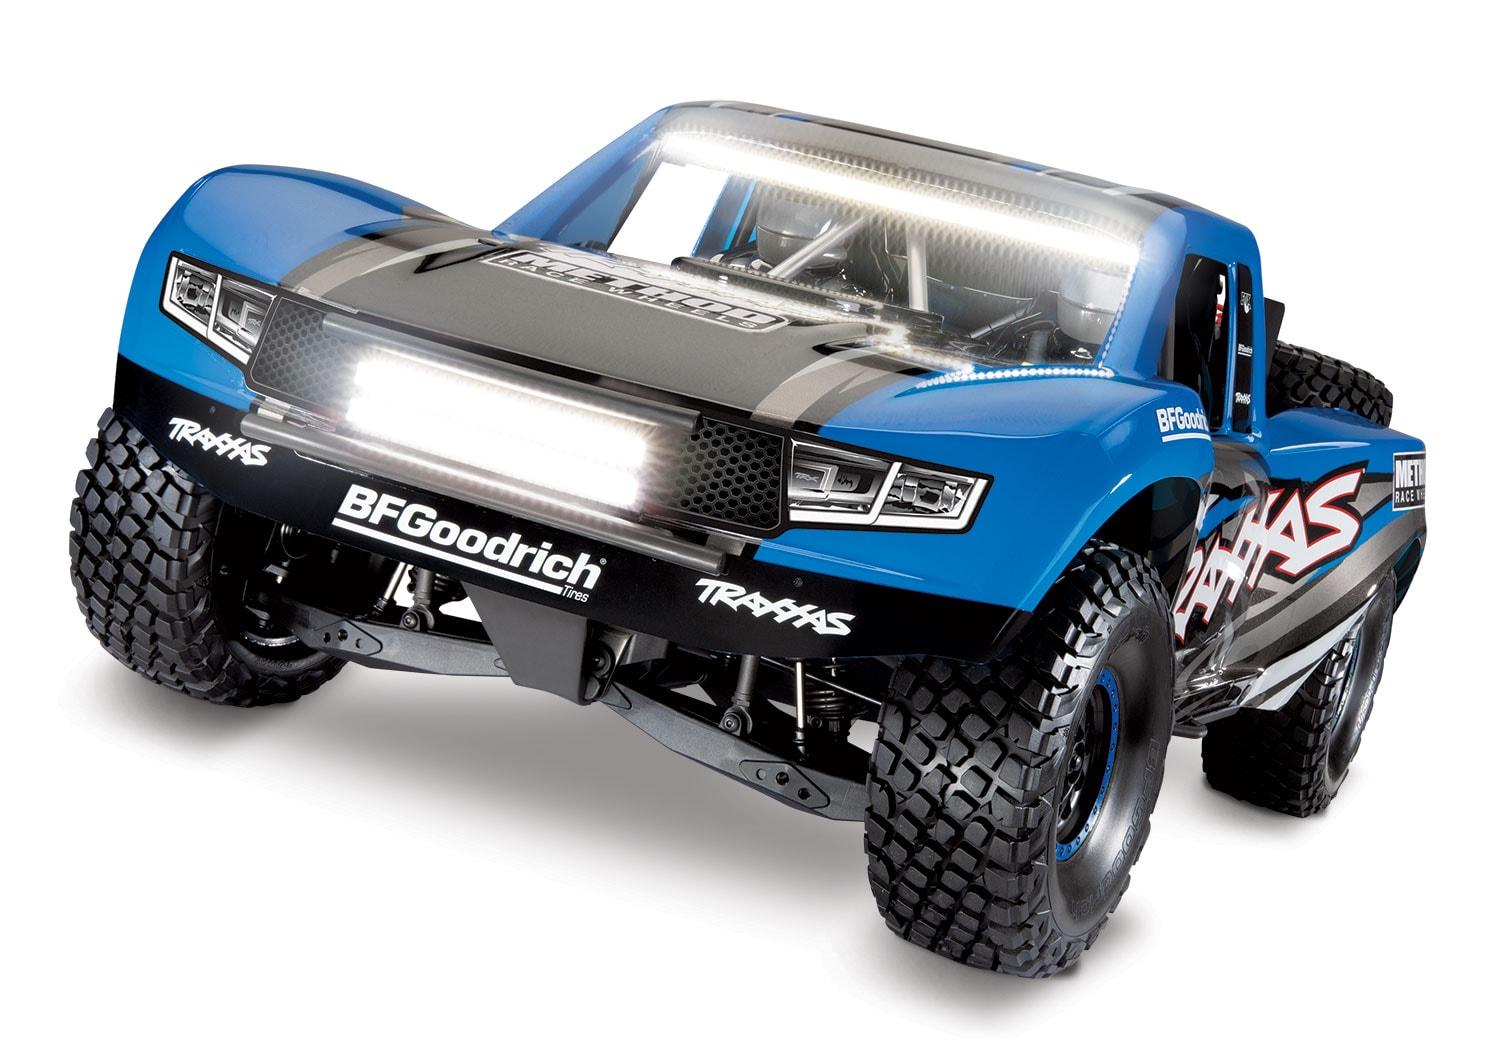 Traxxas UDR Refresh: New Paint and Pre-Installed Lights for R/C Action Day or Night